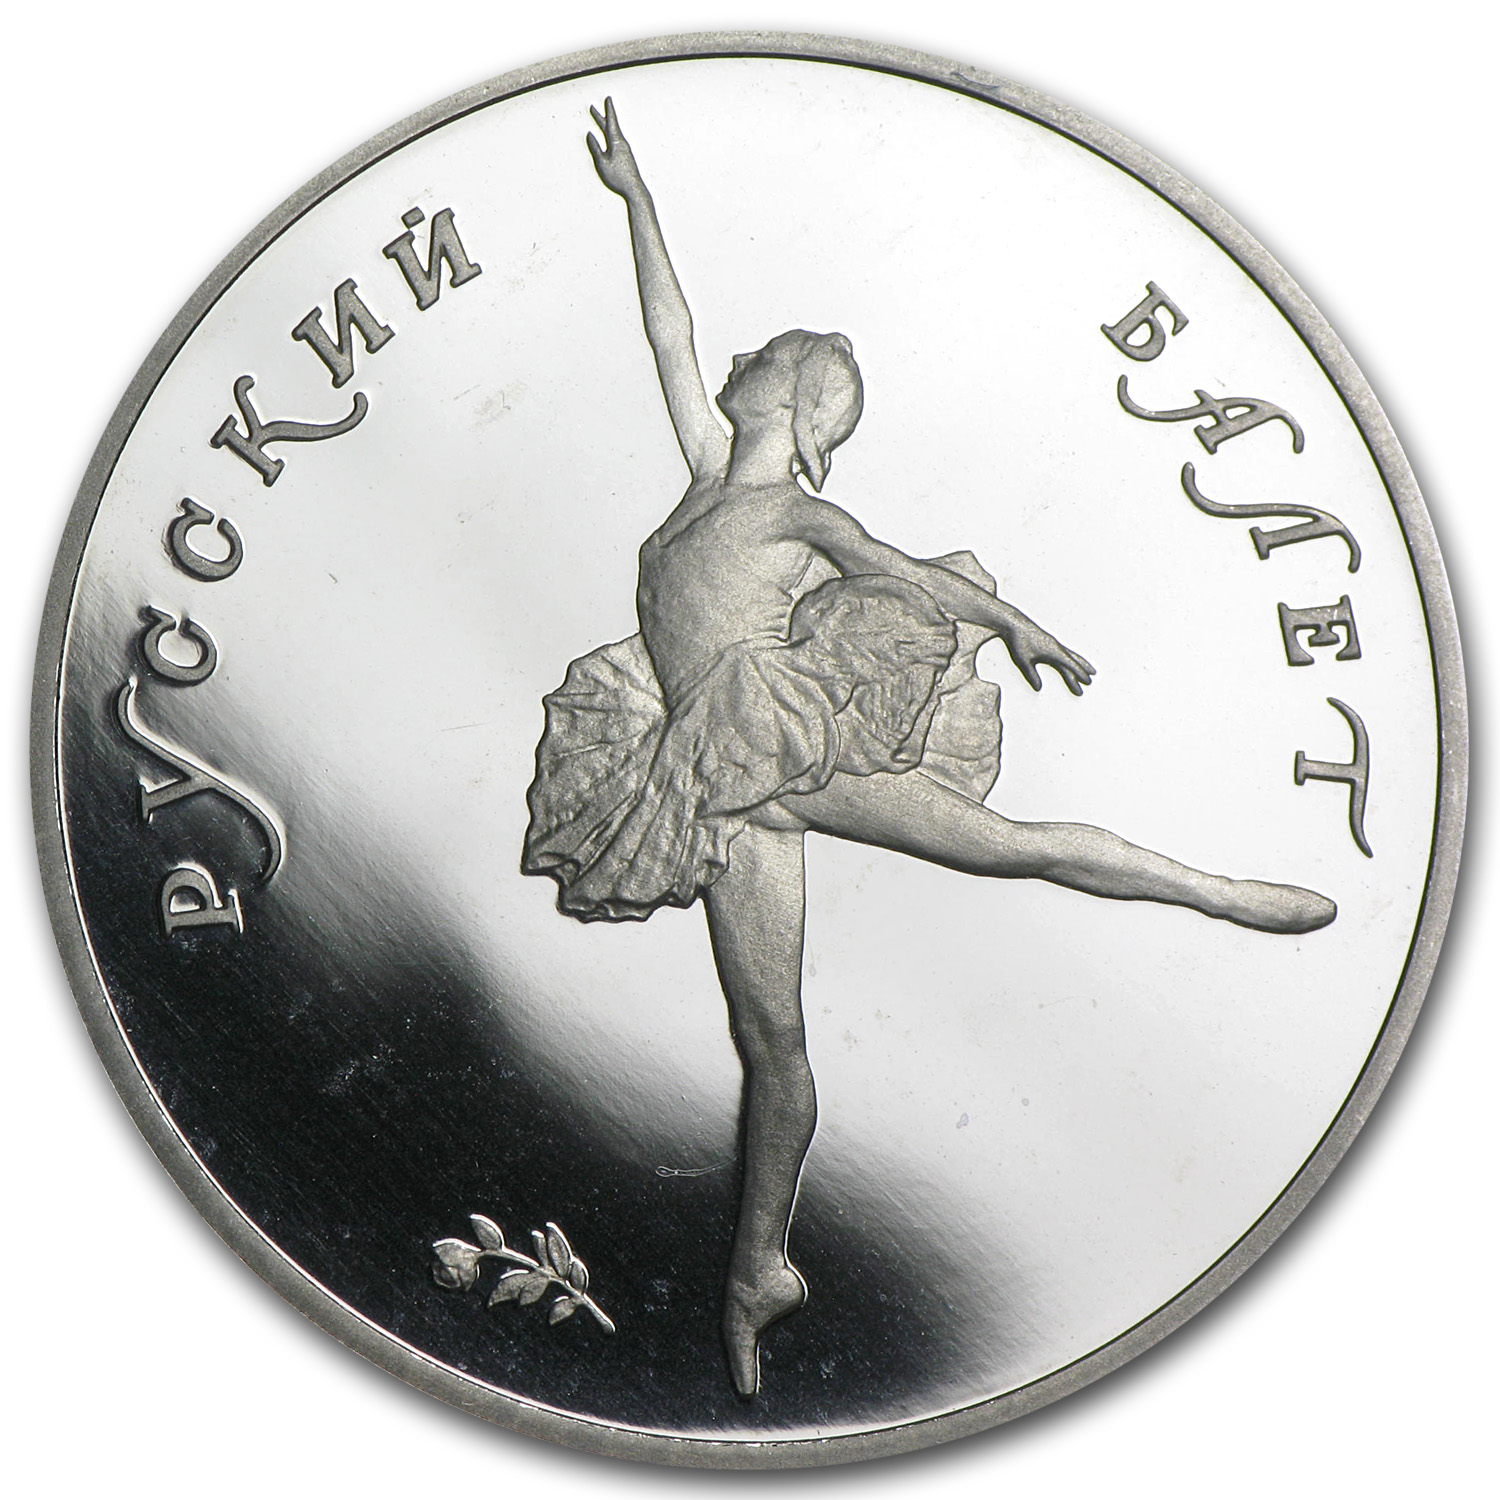 1991 Russia 1 oz Palladium Ballerina Proof